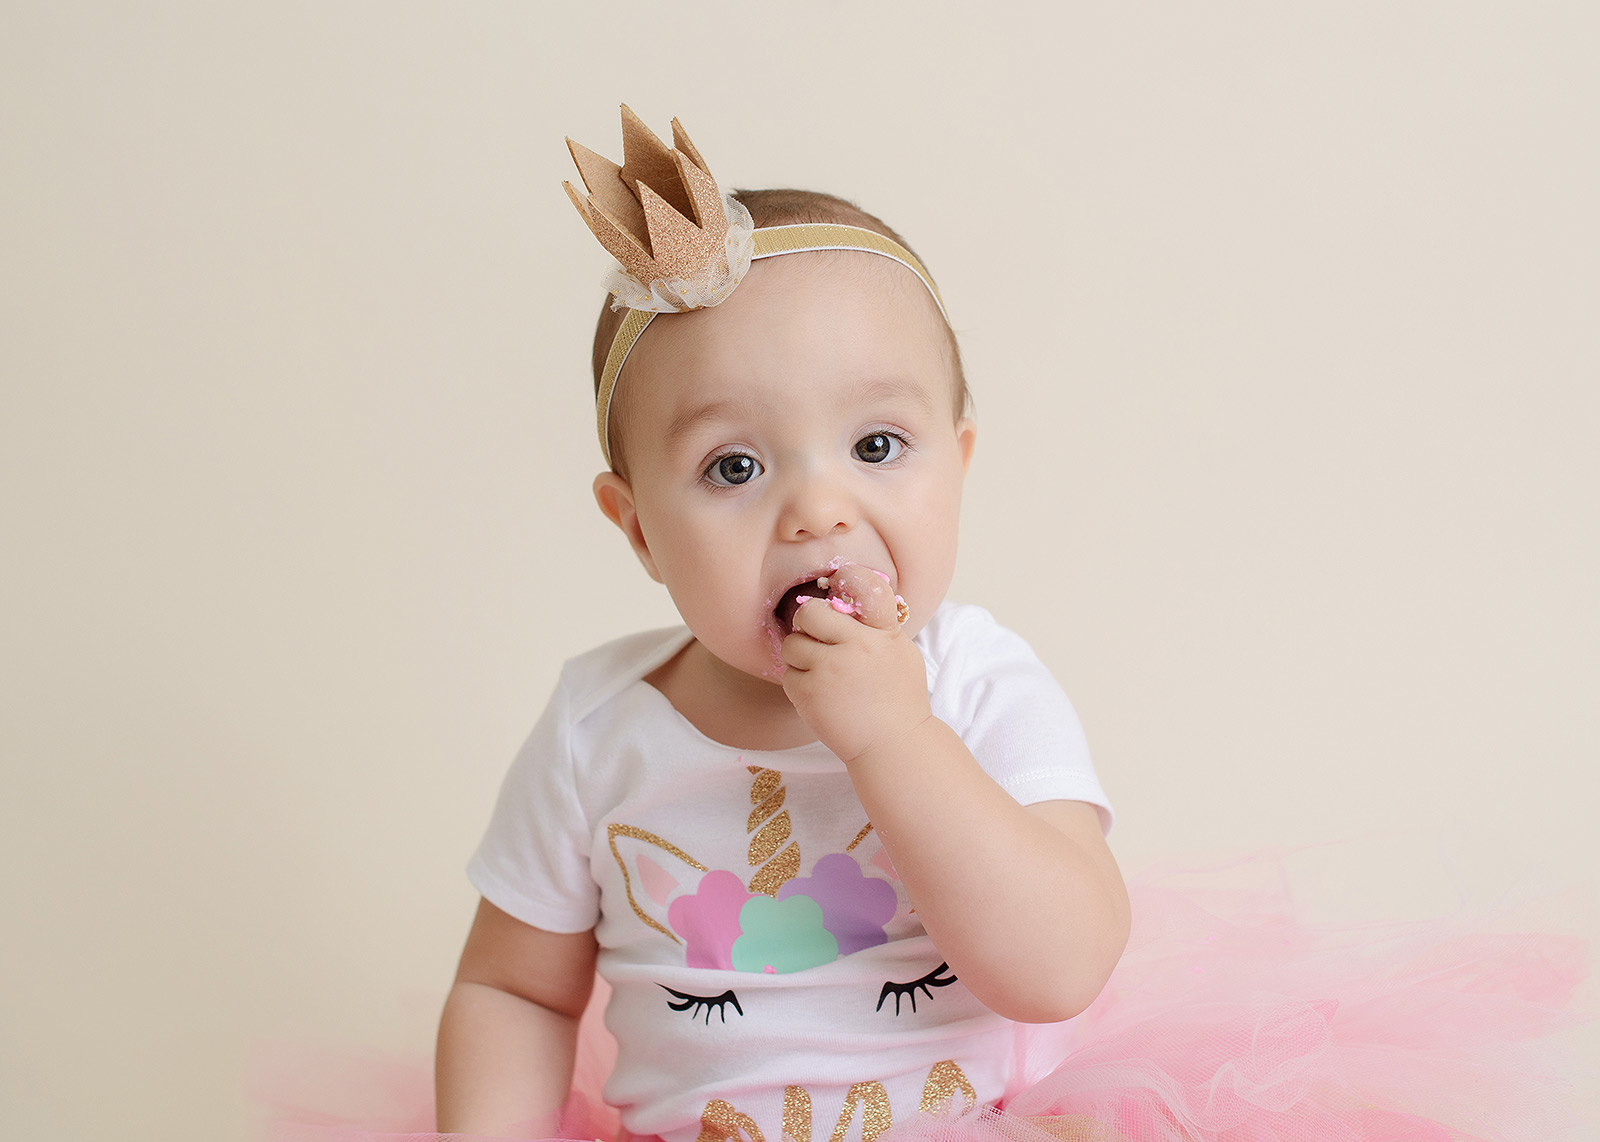 Baby Girl Eating Pink Frosting in Pink Unicorn Tutu Outfit